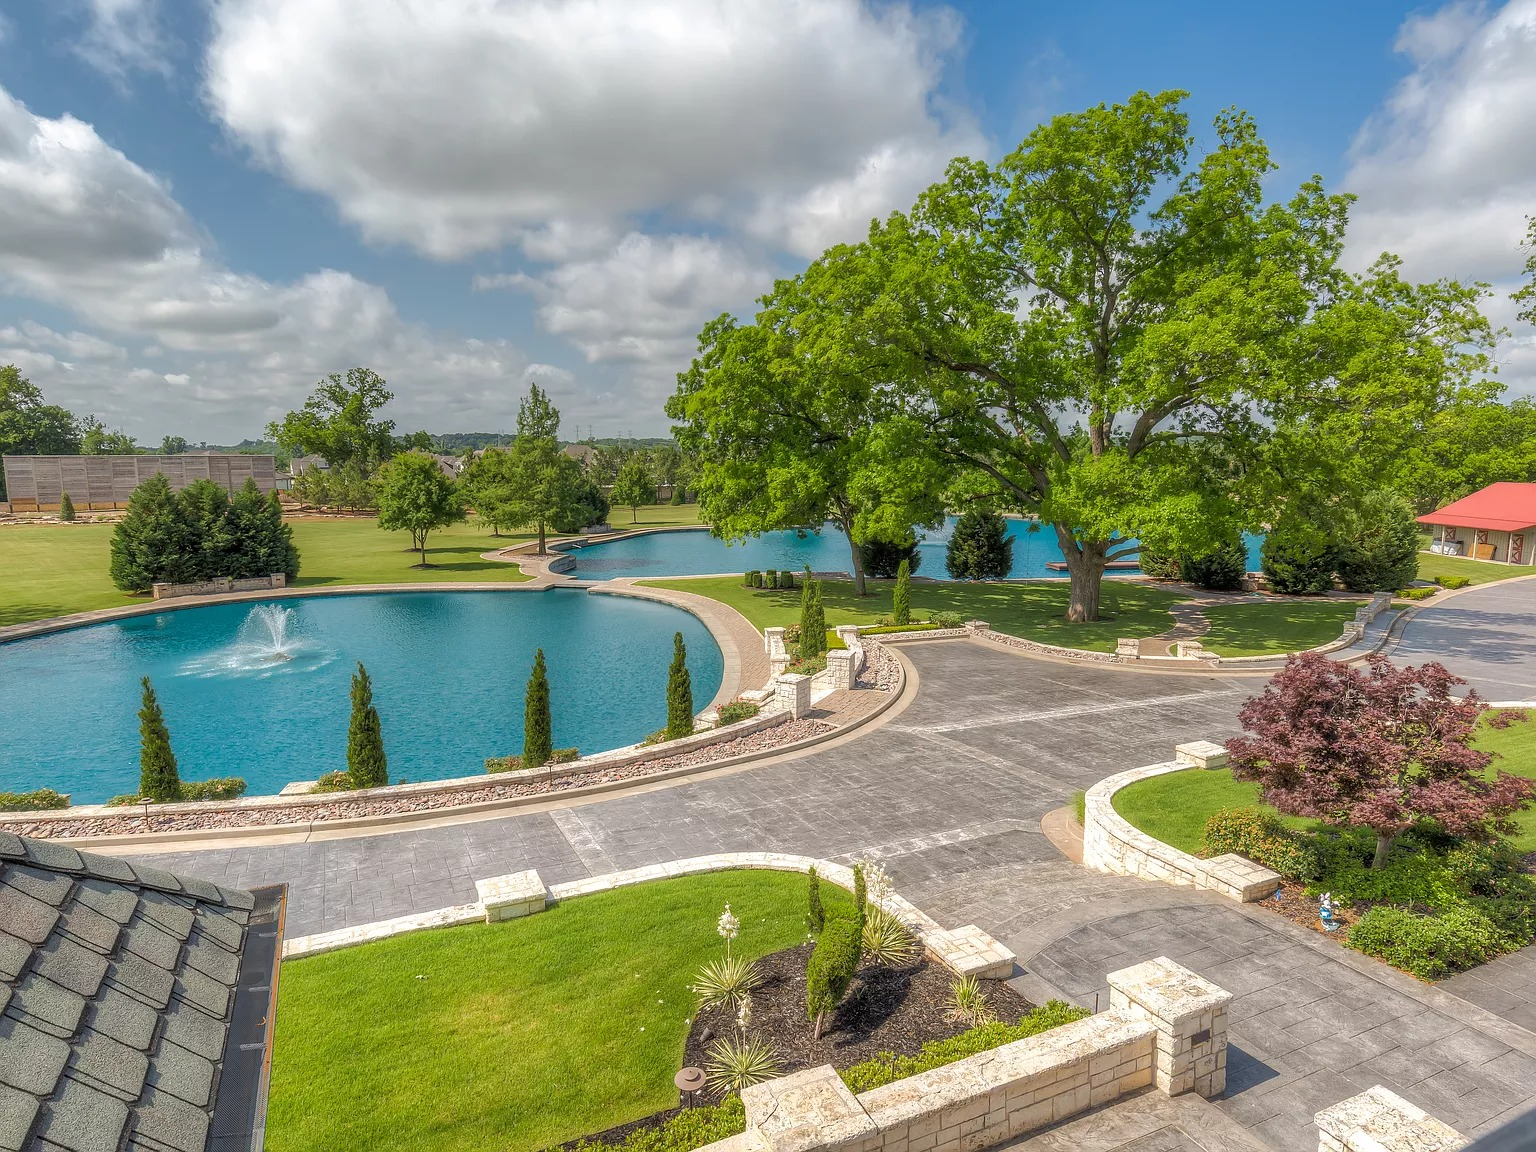 4717 E 118th St, Tulsa, OK 74137 - $6,500,000 home for sale, house images, photos and pics gallery